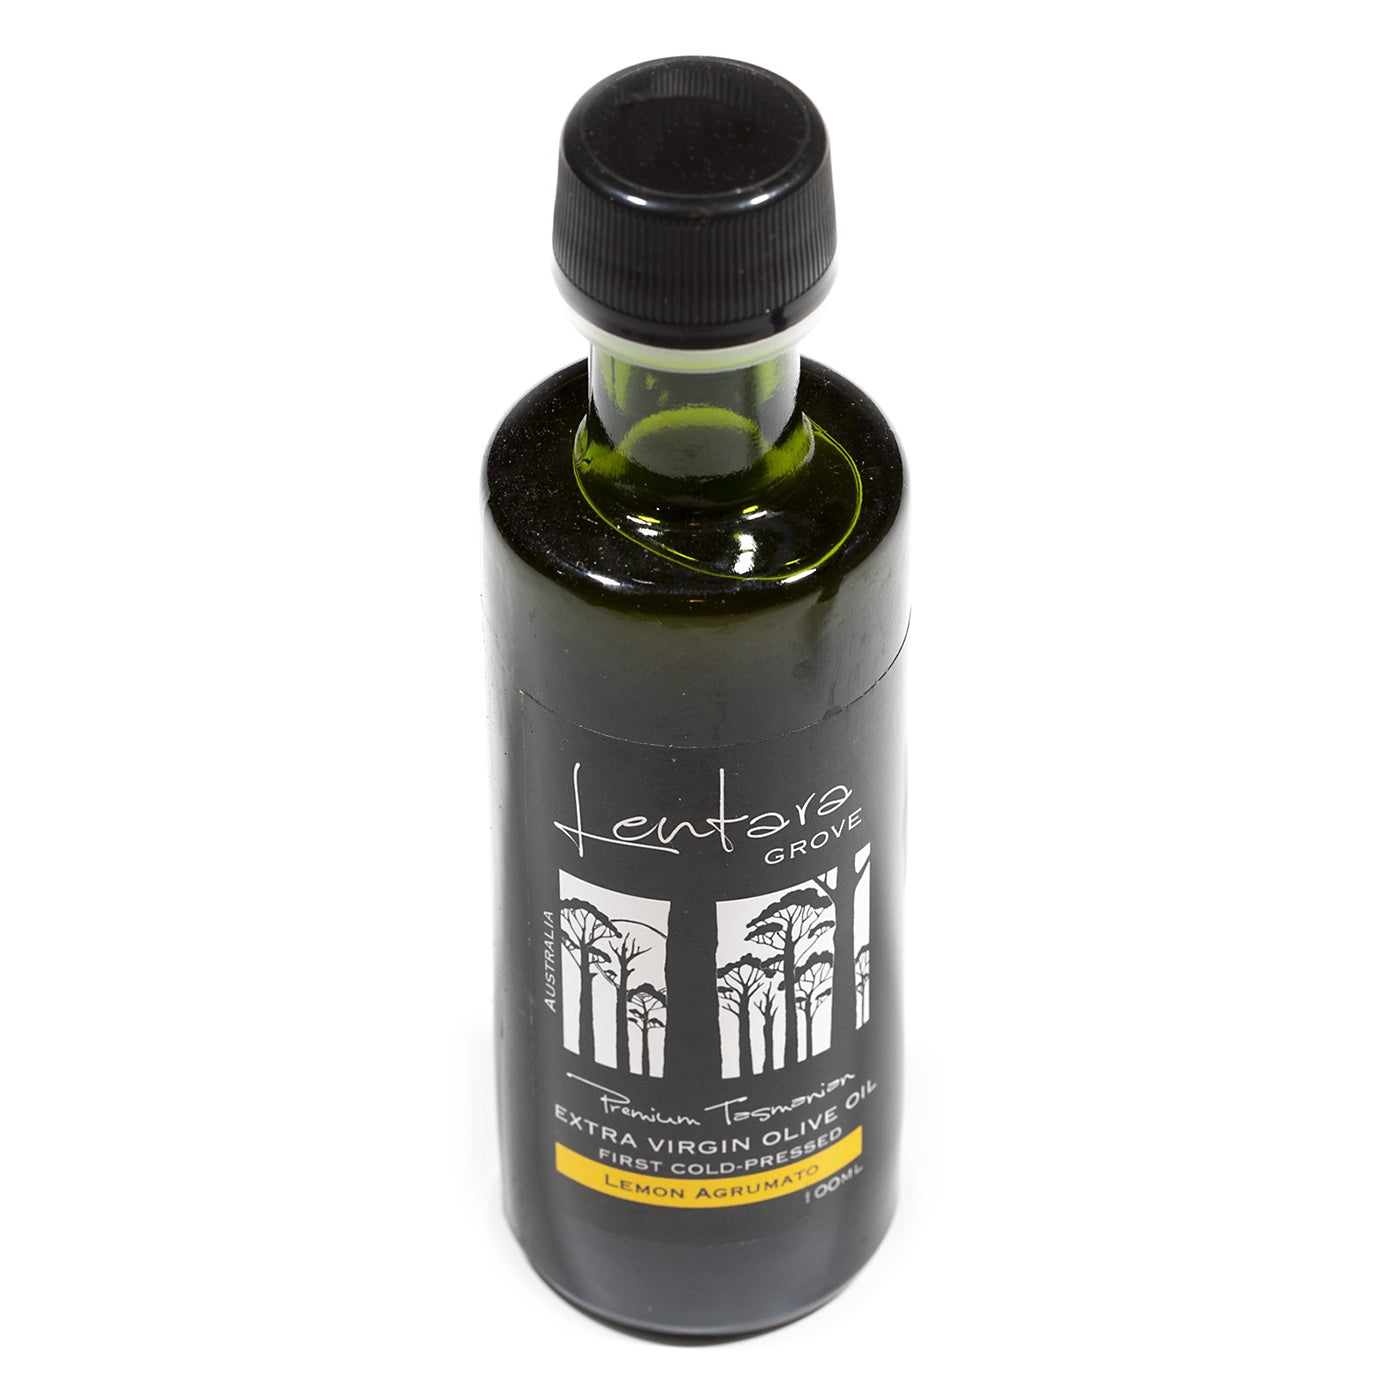 Lentara Grove - Extra Virgin Olive Oil - Lemon Agrumato